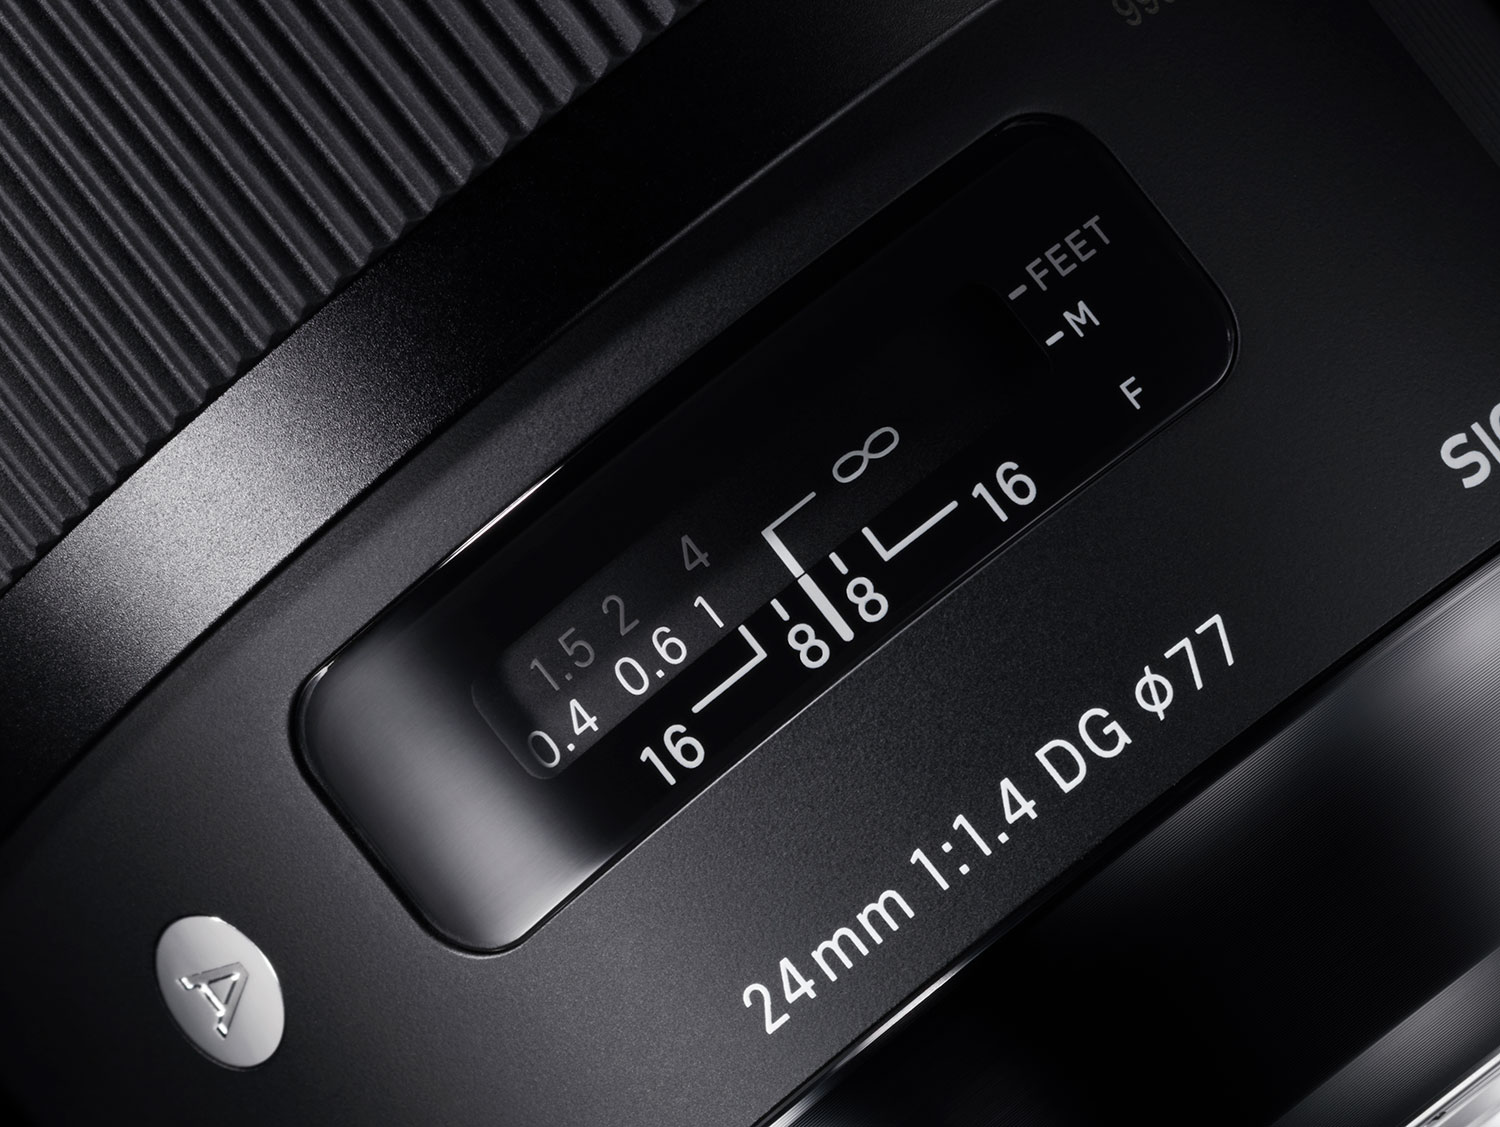 NOW IN STOCK: The Sigma 24mm F1.4 DG HSM | Art – Sony E mount